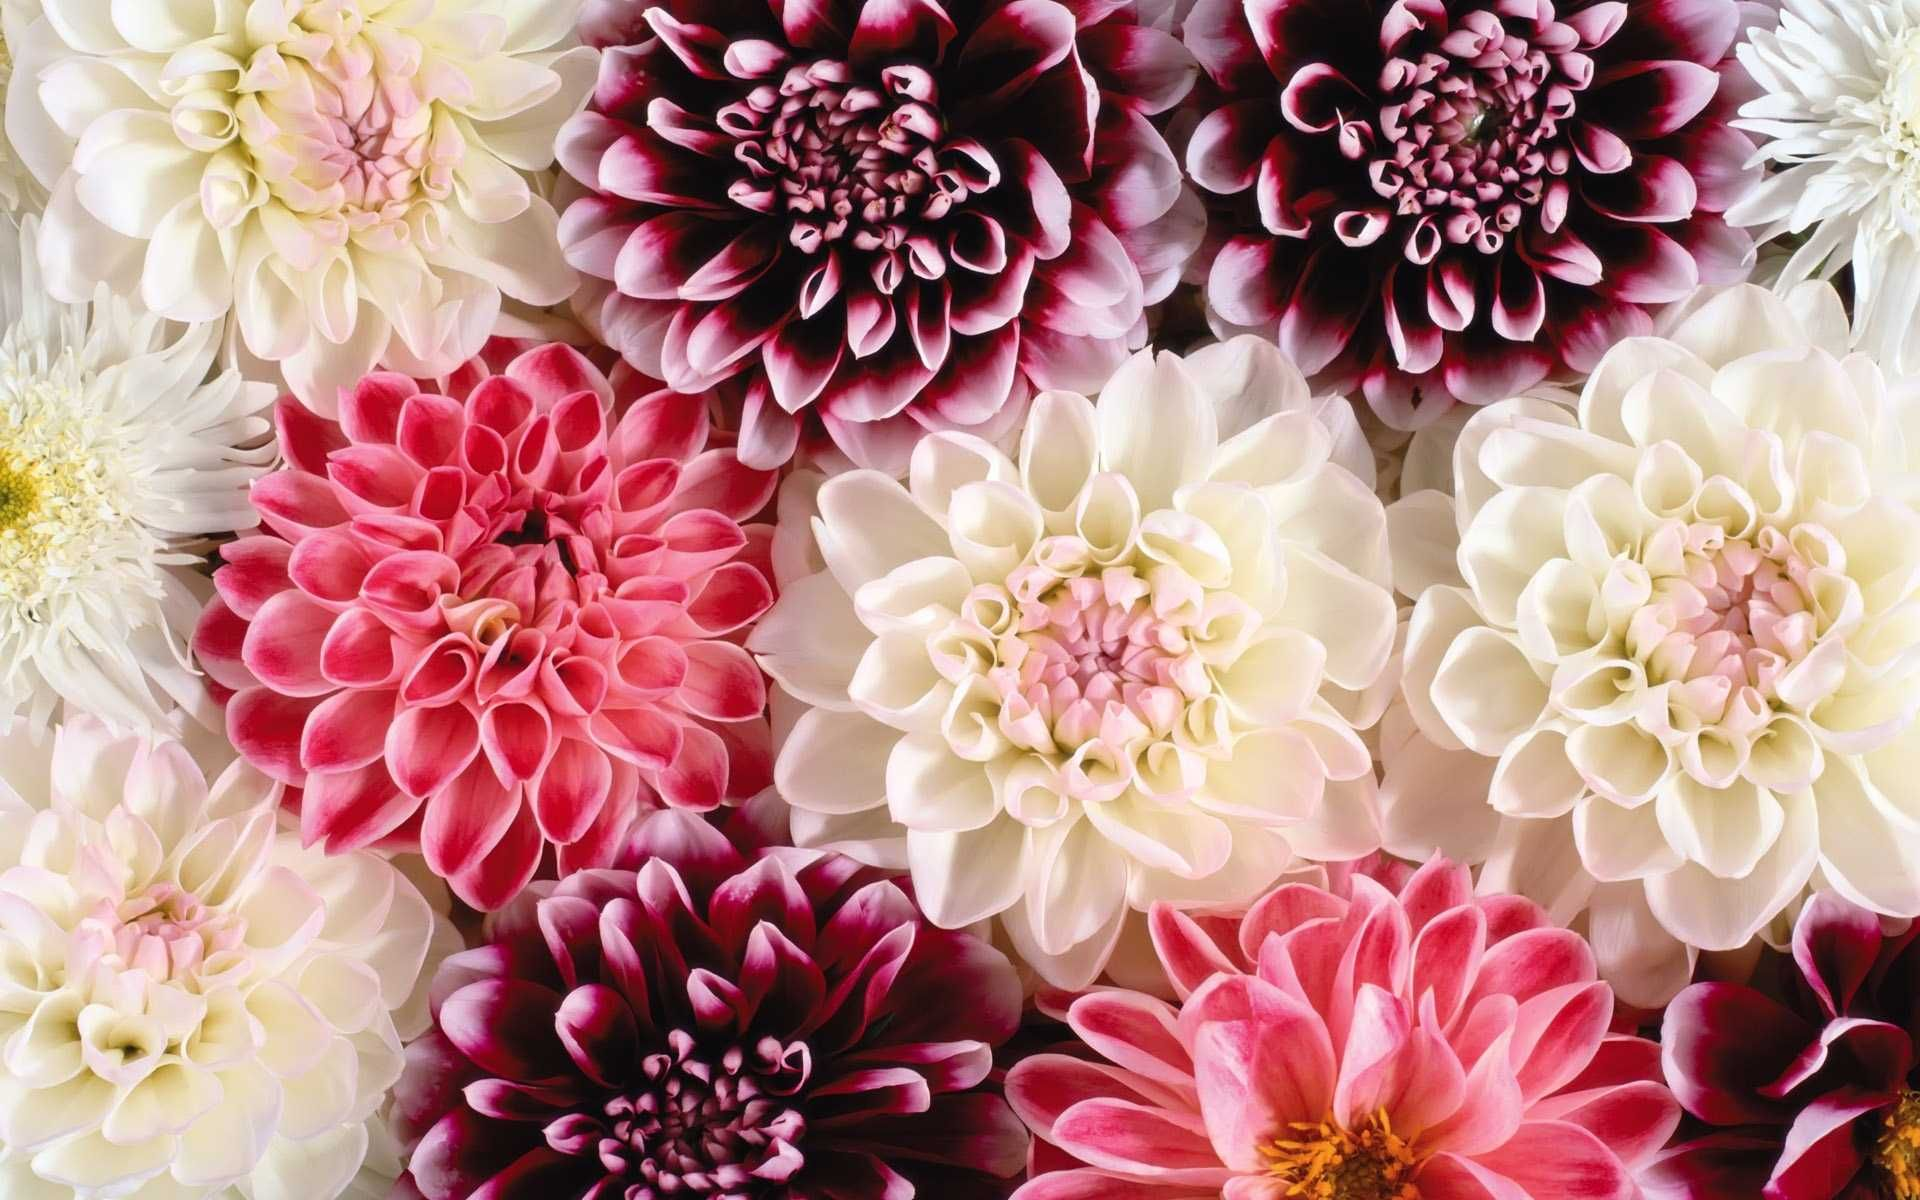 Hd Flower Wallpapers HD Hd Vintage Background Floral